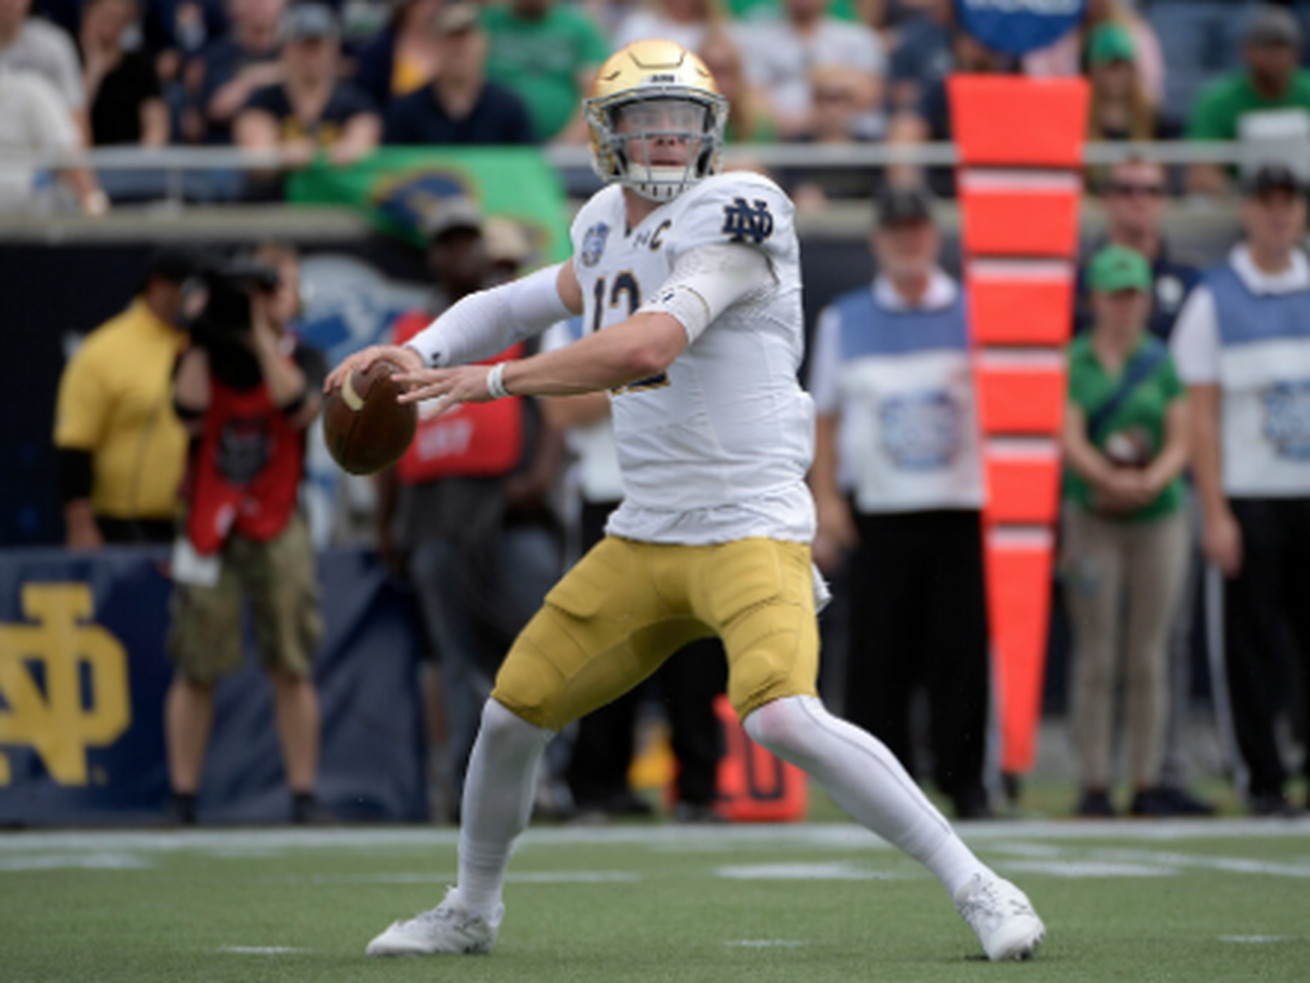 Notre Dame football season on hold